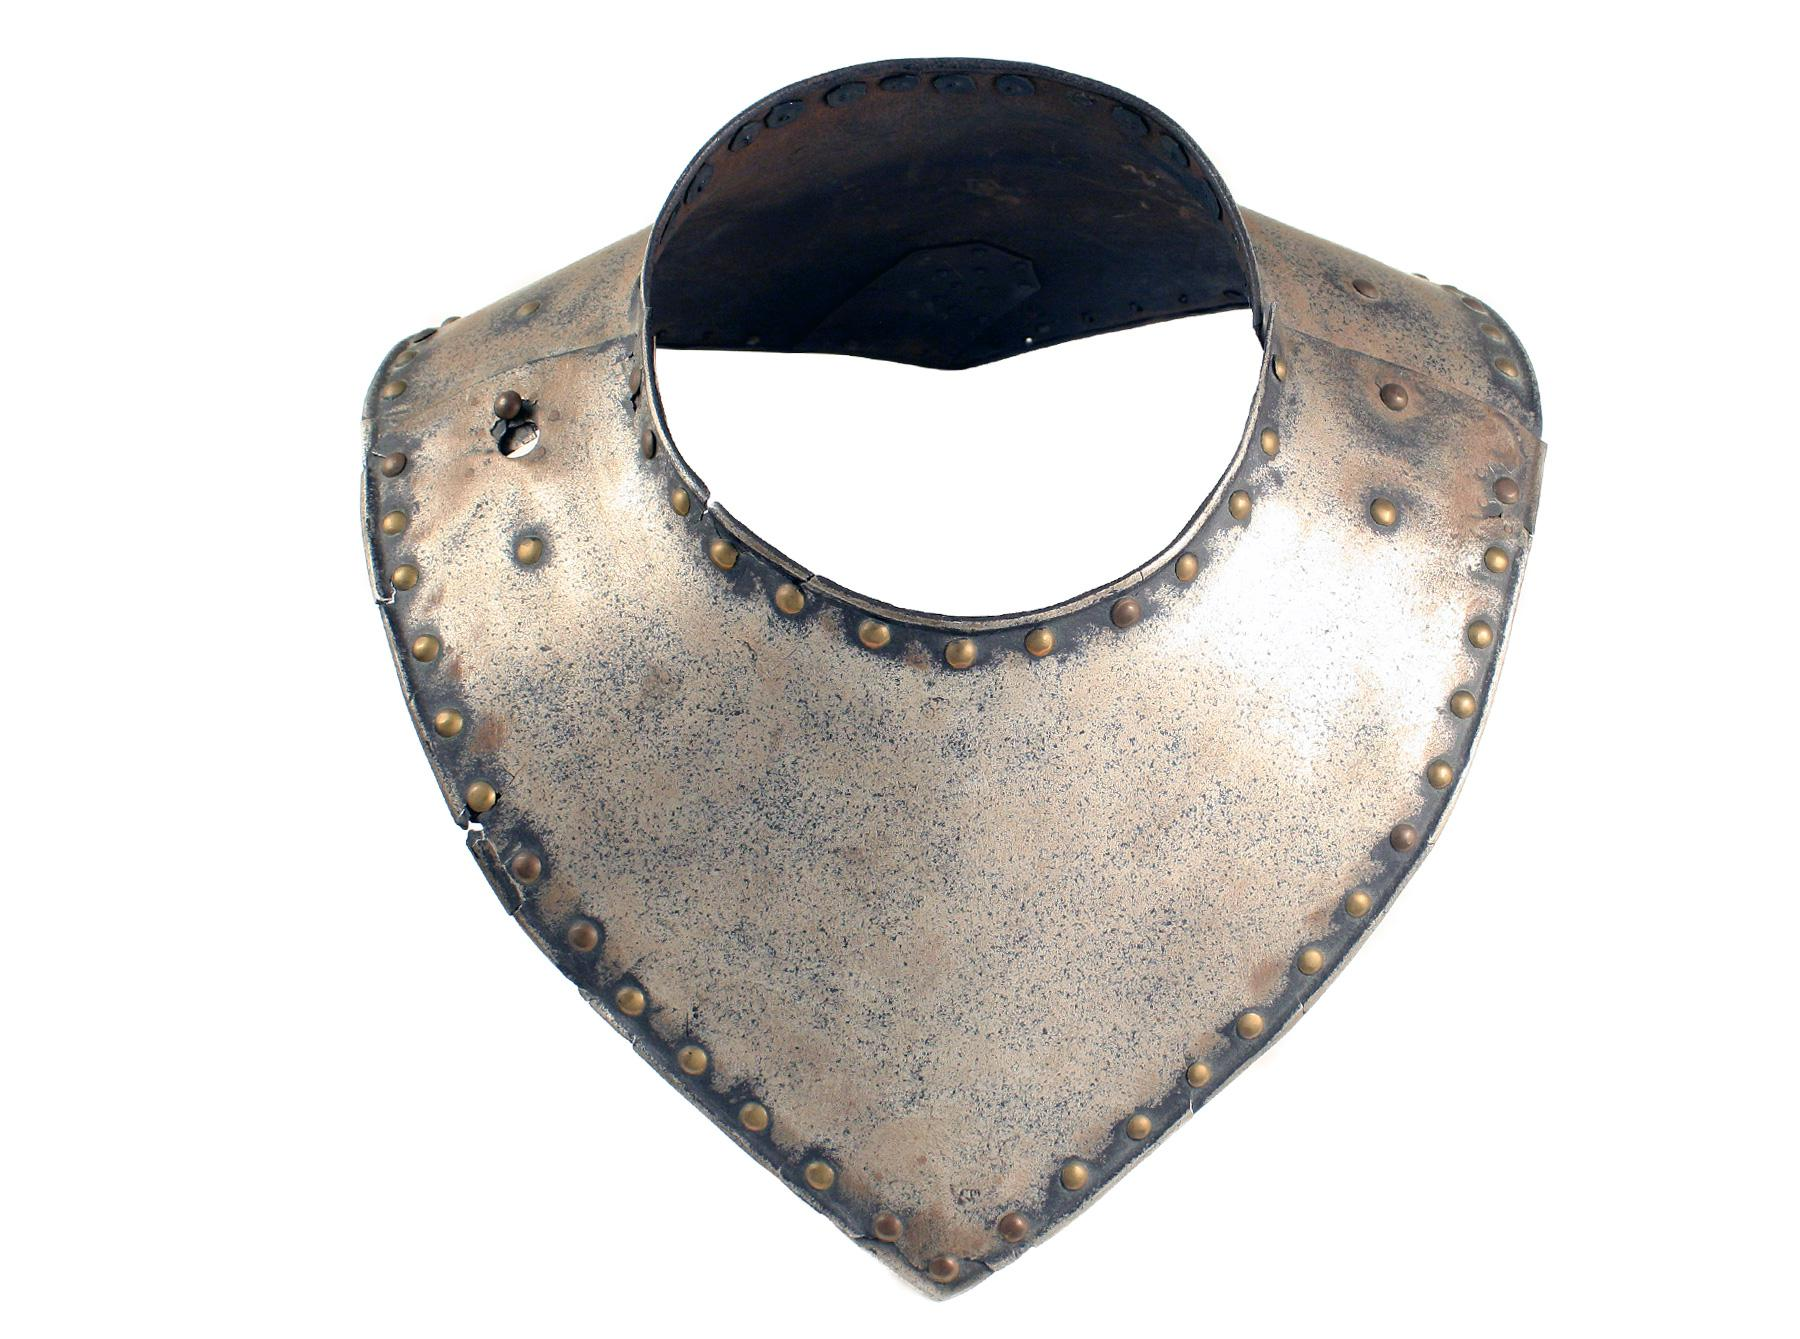 A 17th Century Gorget